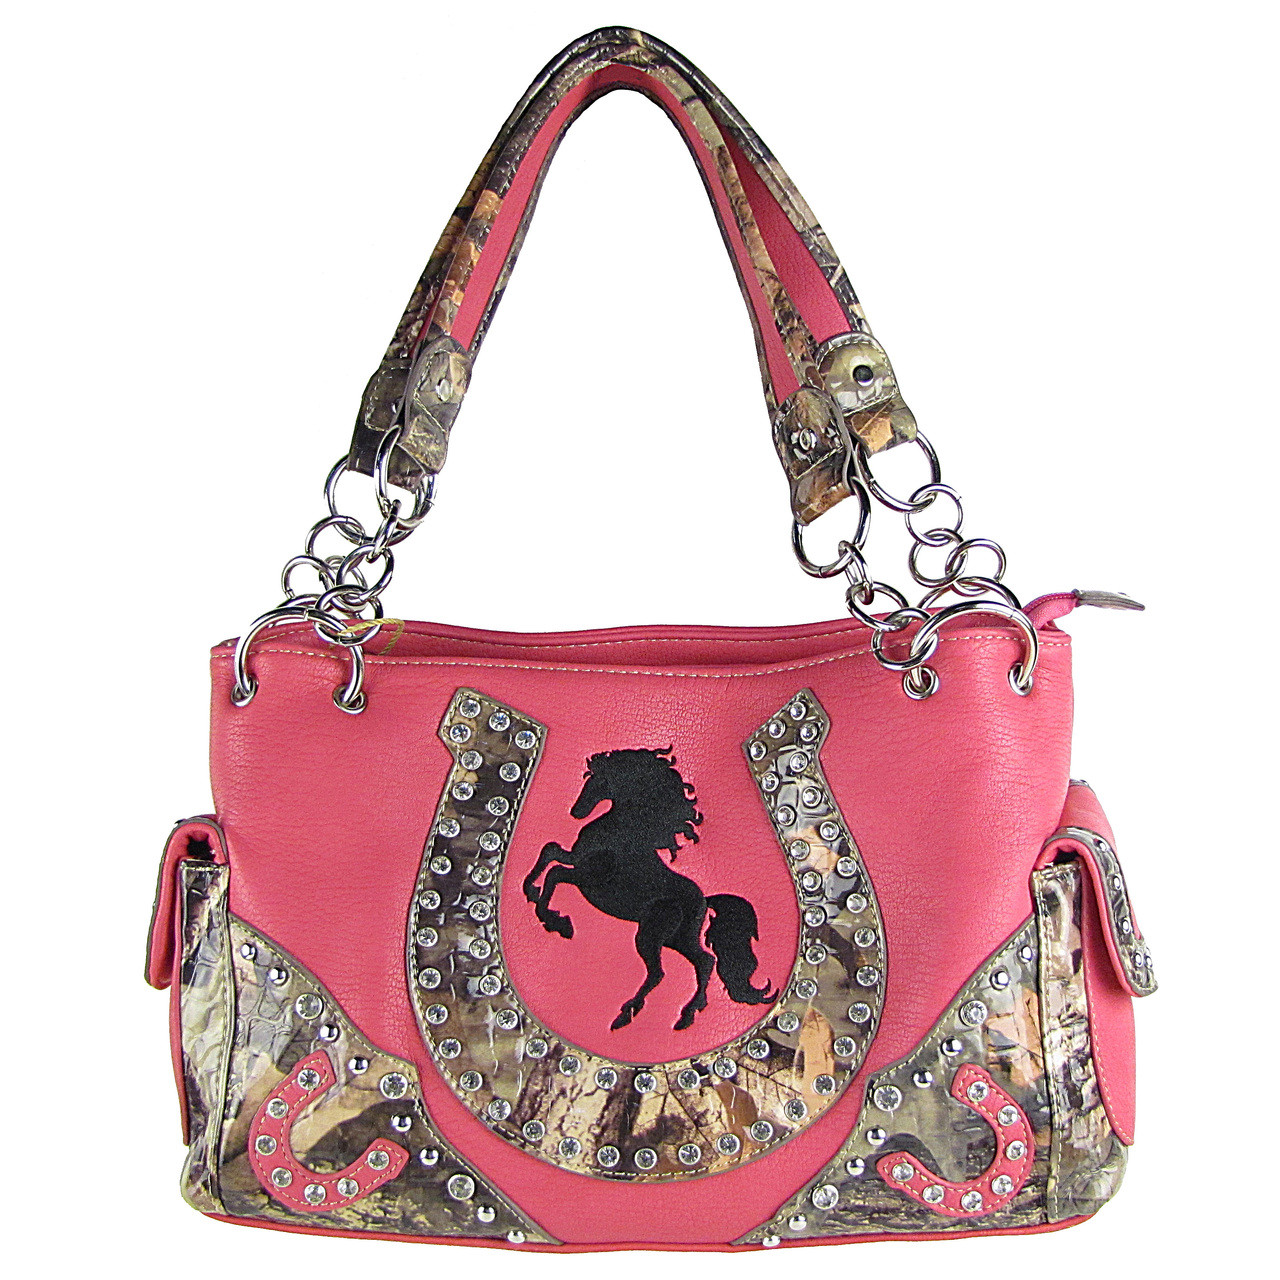 HOT PINK WESTERN MOSSY CAMO RHINESTONE STUDDED HORSESHOE LOOK SHOULDER HANDBAG HB1-HH392-10HPK